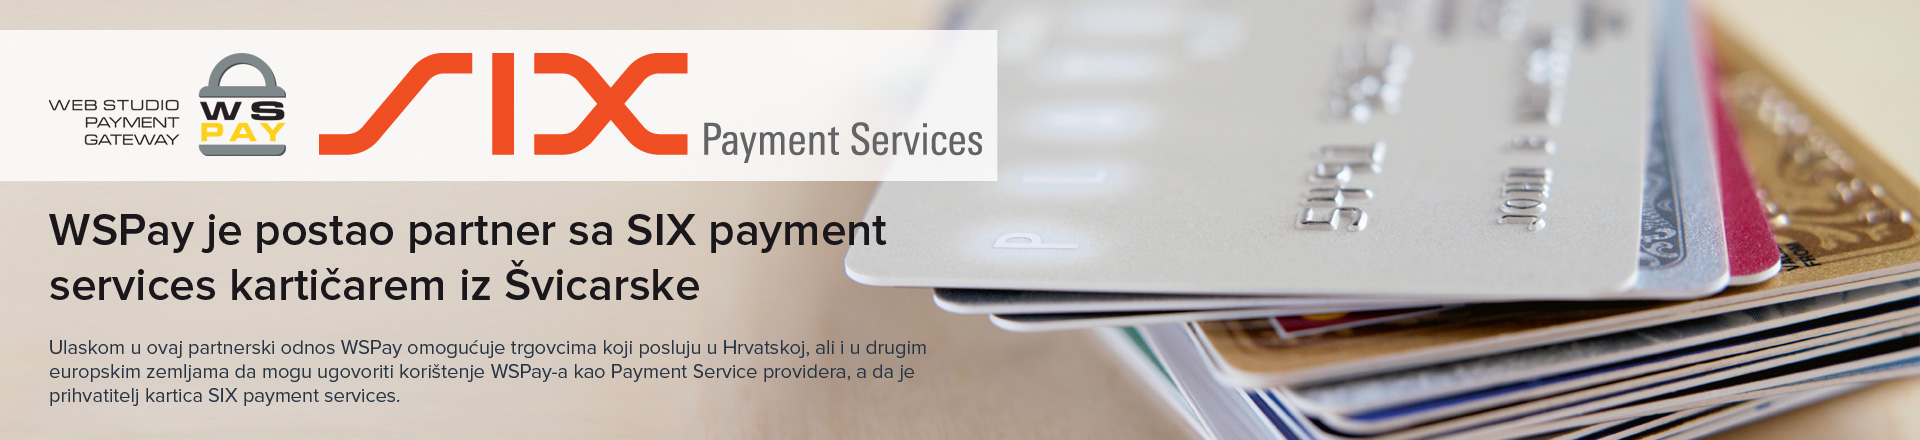 http://www.wspay.info/Repository/Banners/WSPay-SIX-payment-services-1920x440.jpg